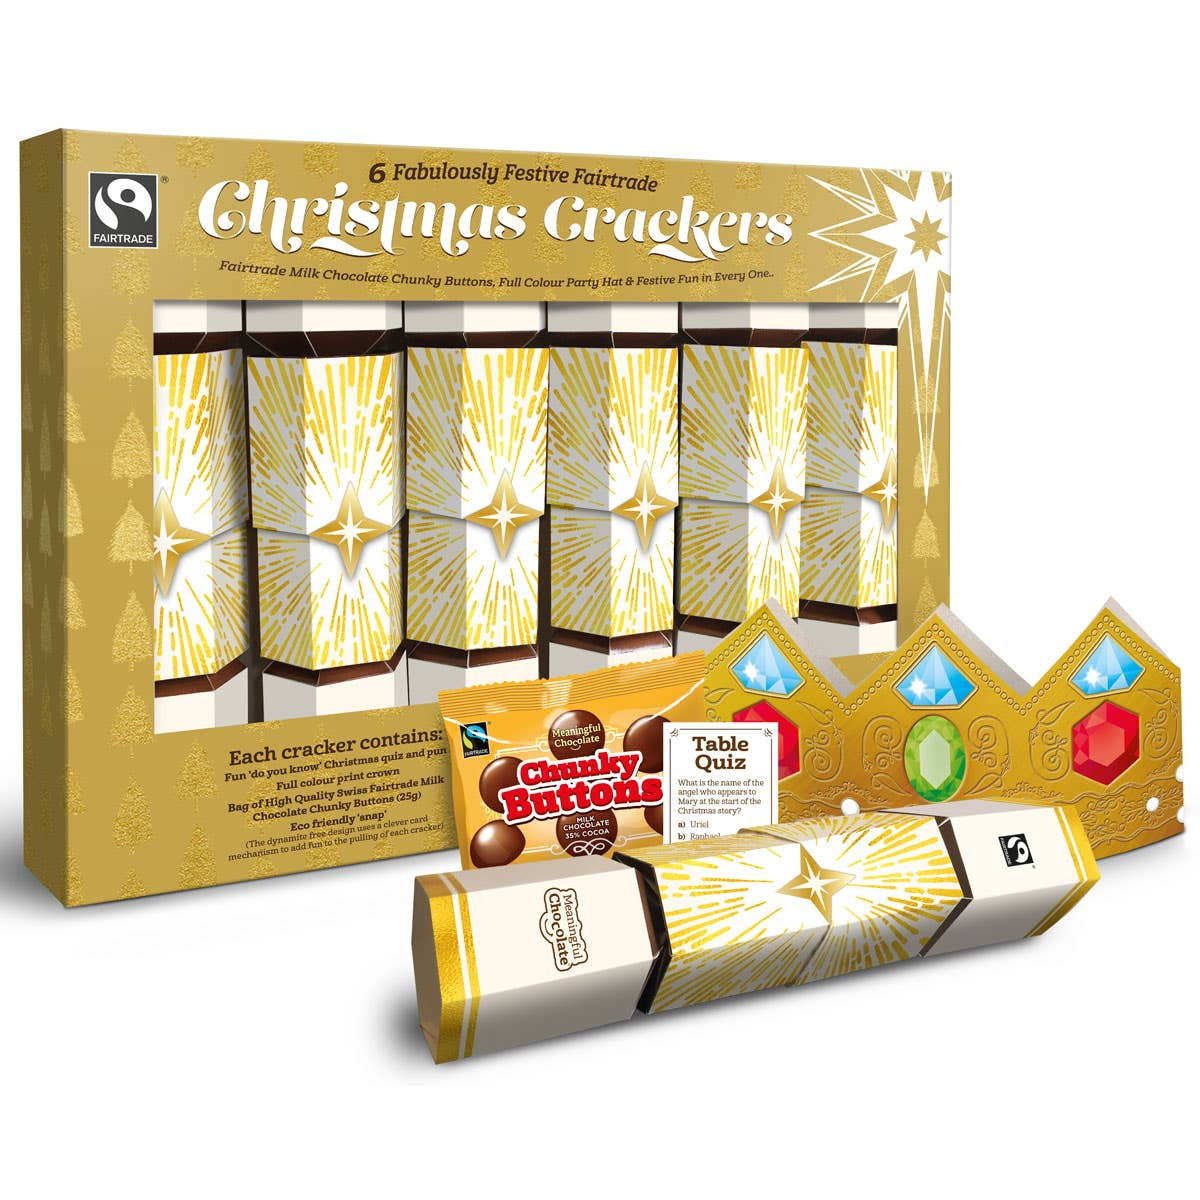 Meaningful Chocolate Company Christmas Cracker Box (6 boxes) CASE